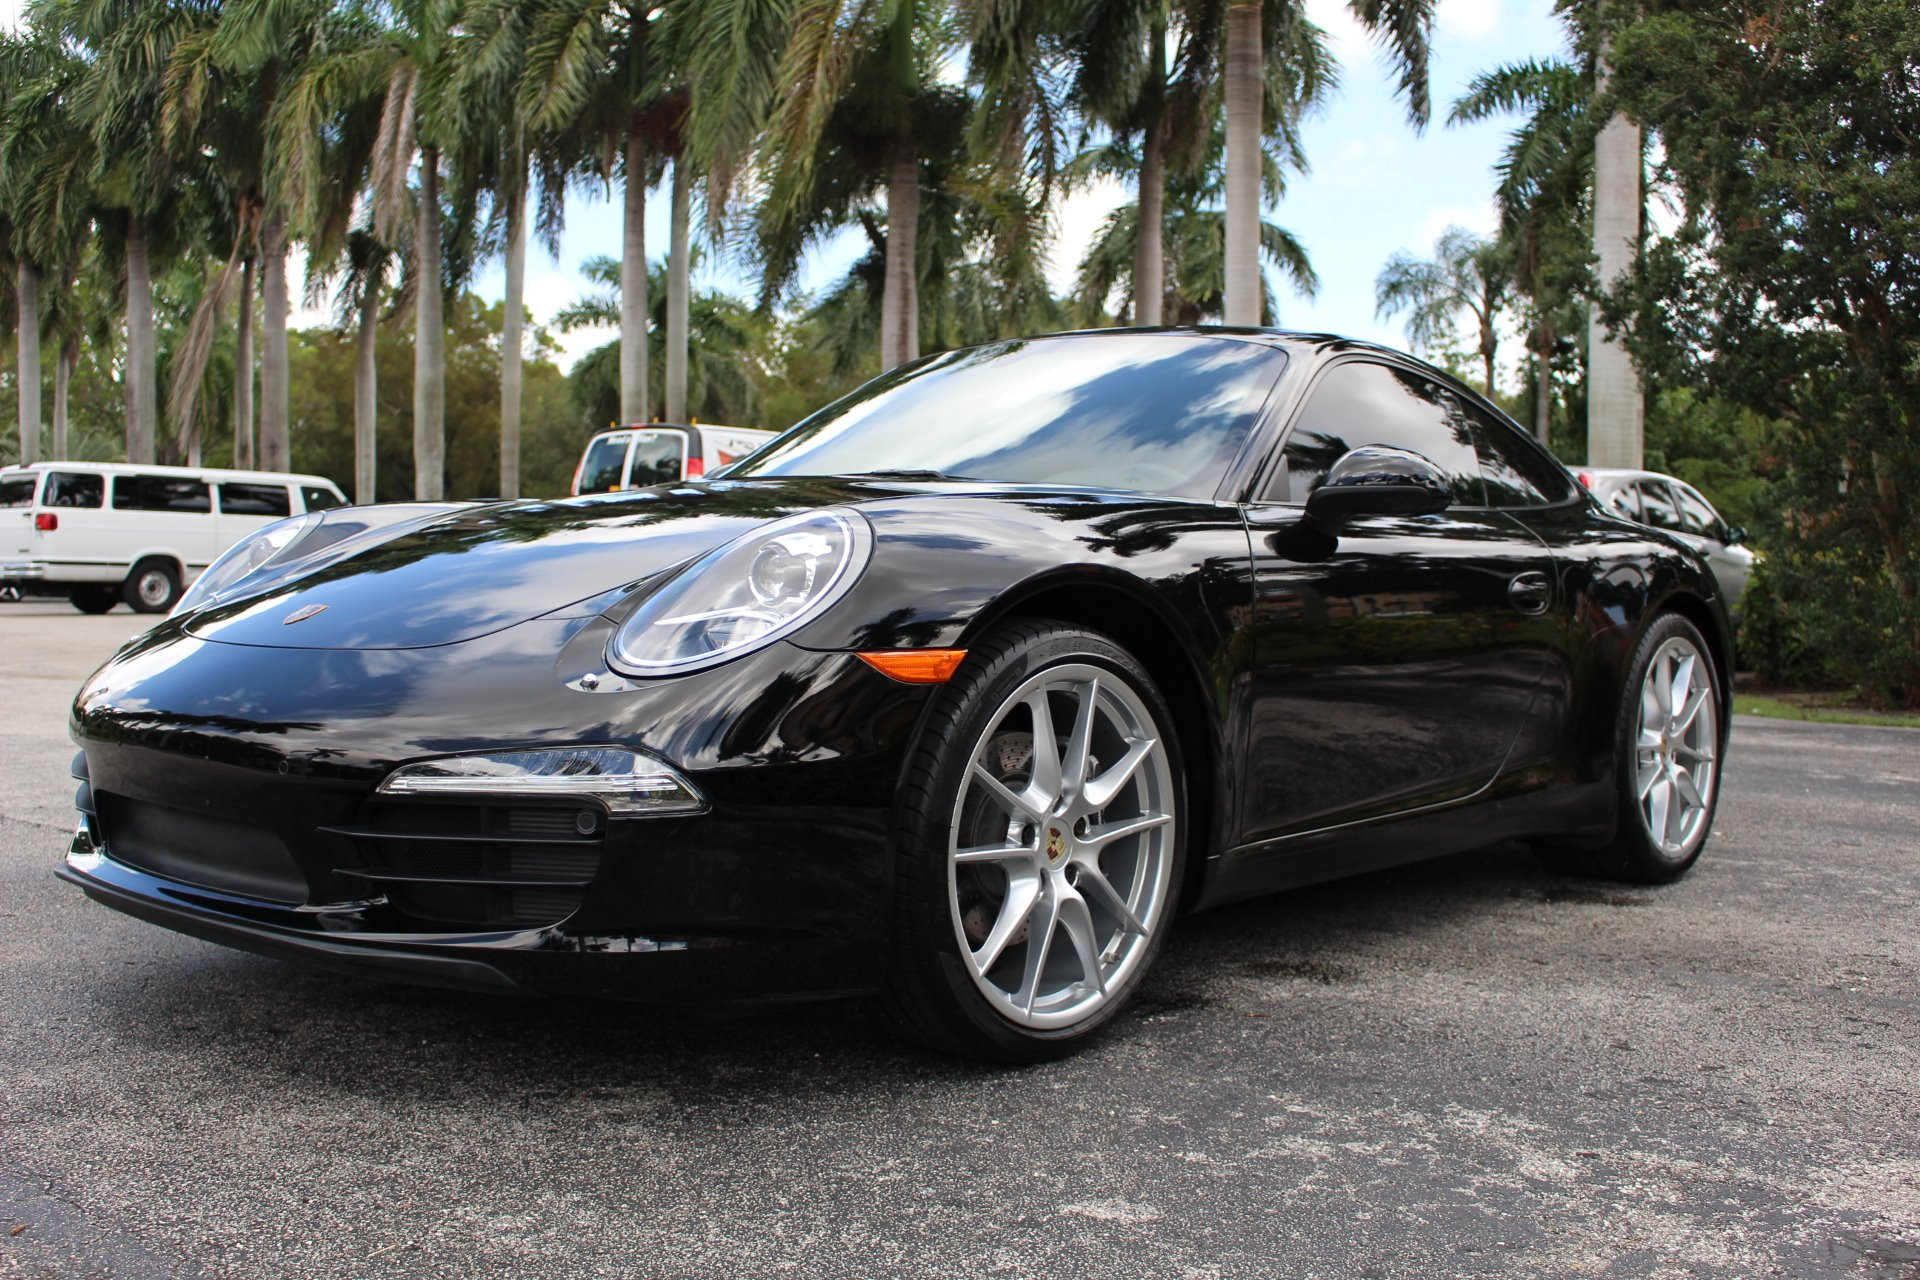 Used 2012 Porsche 911 Carrera for sale Sold at The Gables Sports Cars in Miami FL 33146 3